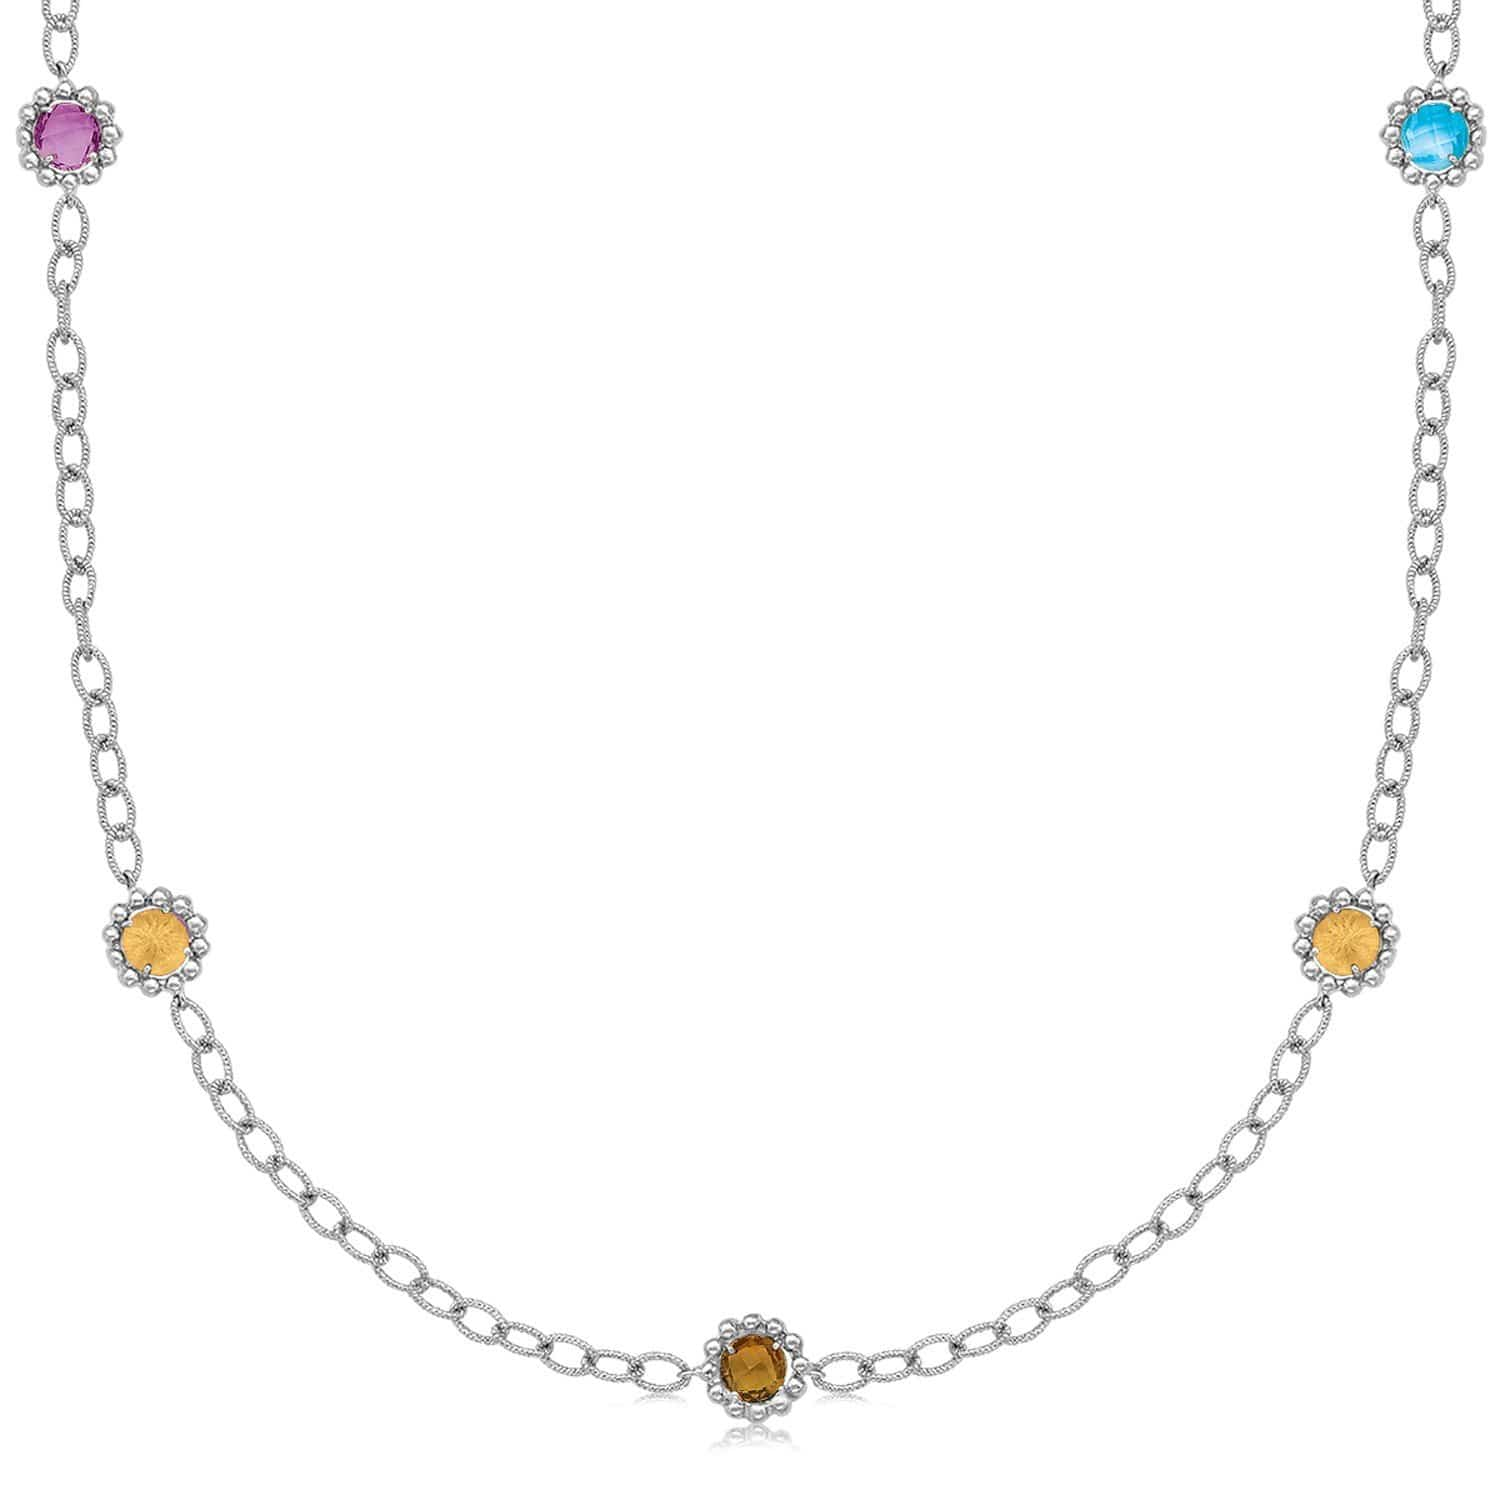 "18K Yellow Gold and Sterling Silver 17"""" Chain Necklace With Multi Gemstones 17 inches"